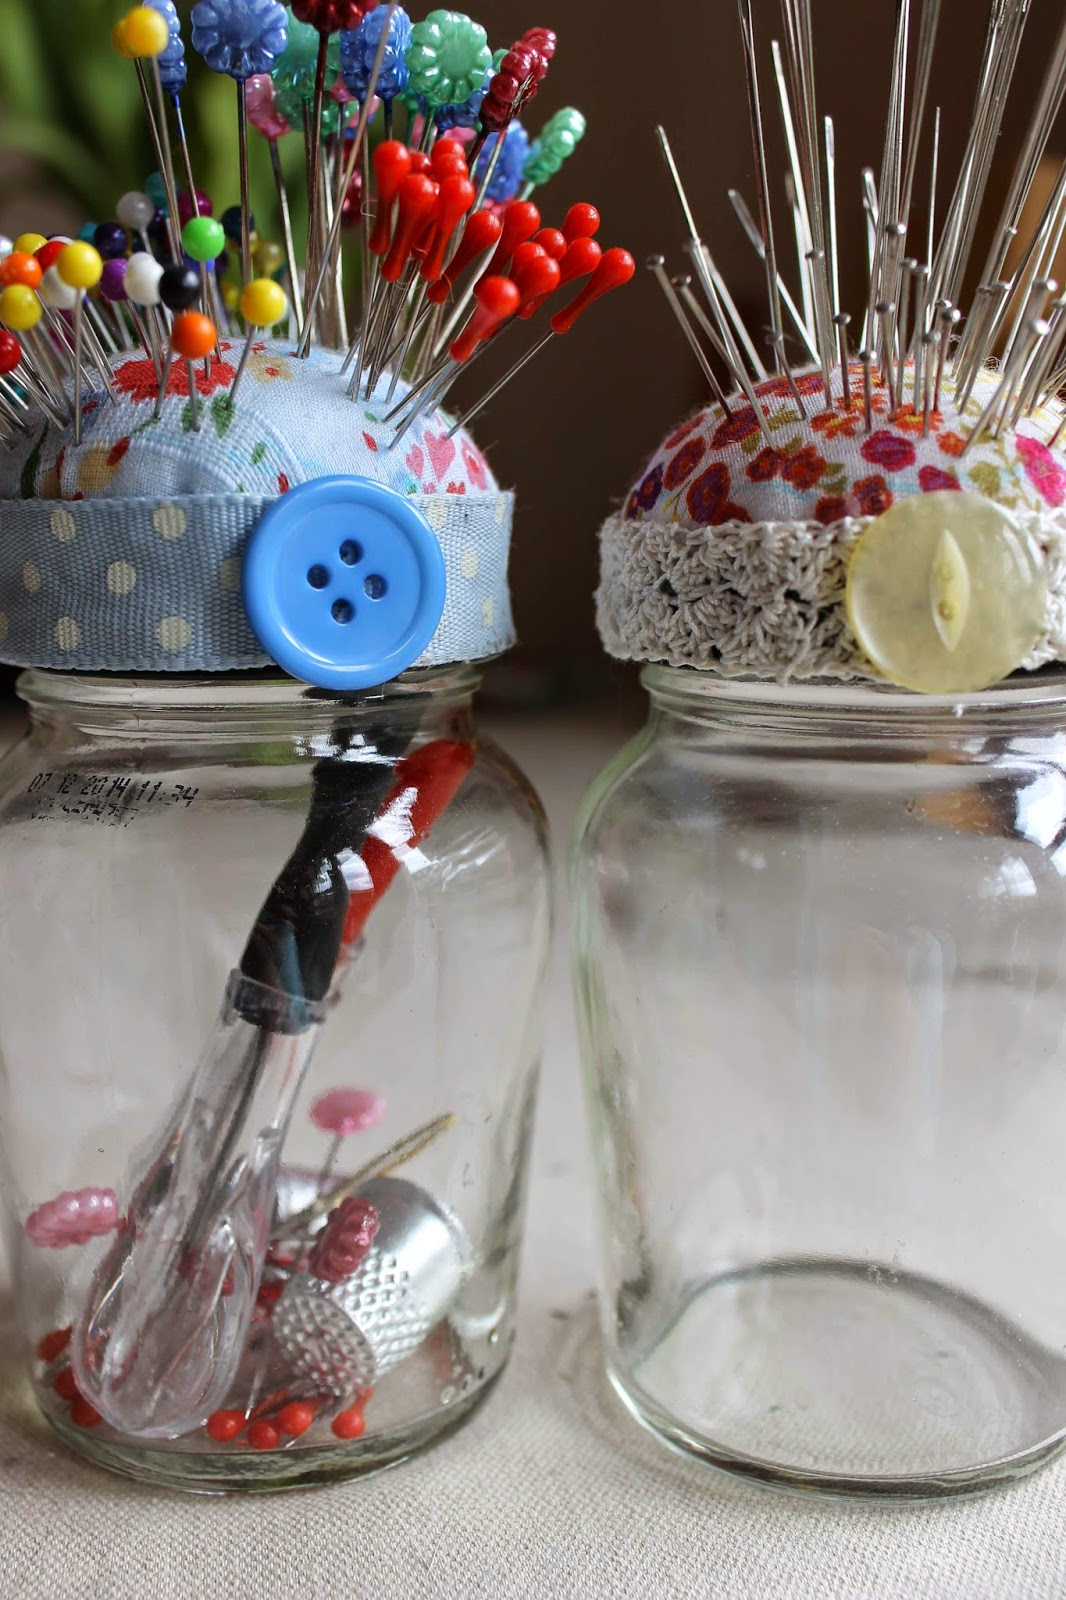 Jam jar pin cushions